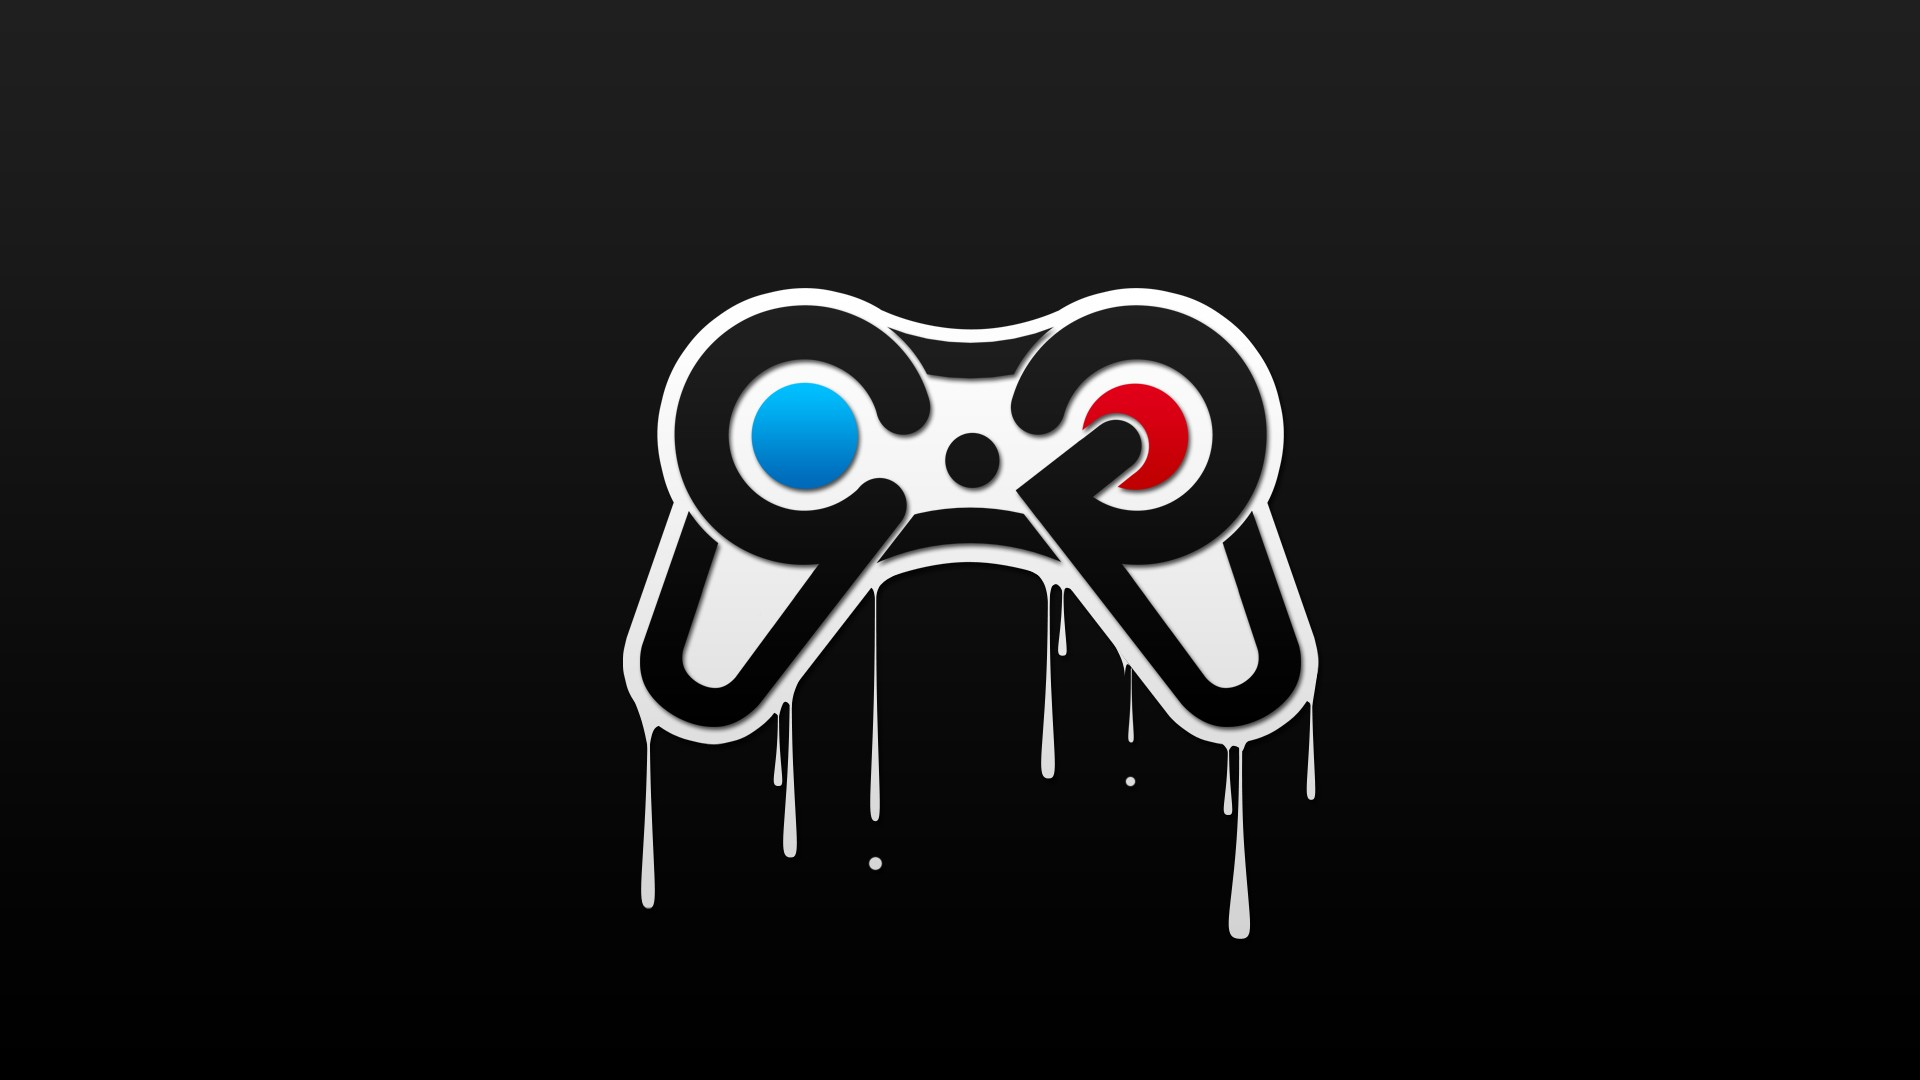 Gamer Thug Controller Hd Wallpapers: Download Ps4 Controller Wallpaper Gallery